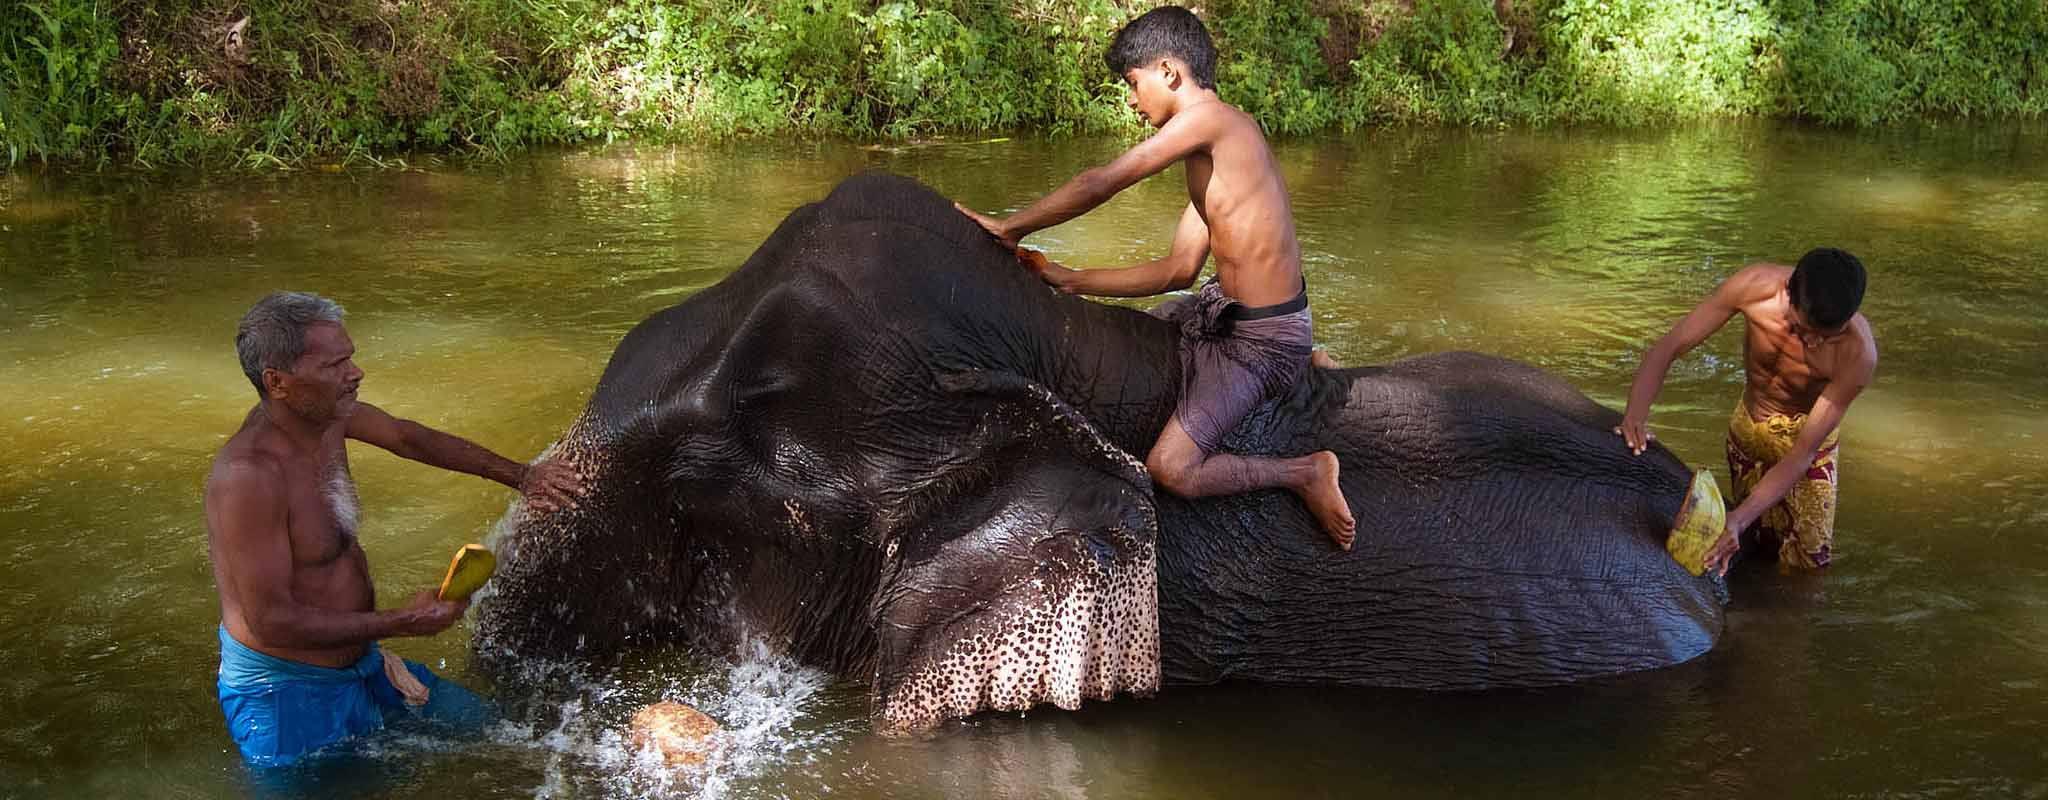 bathing elephant-boy wash an elephat